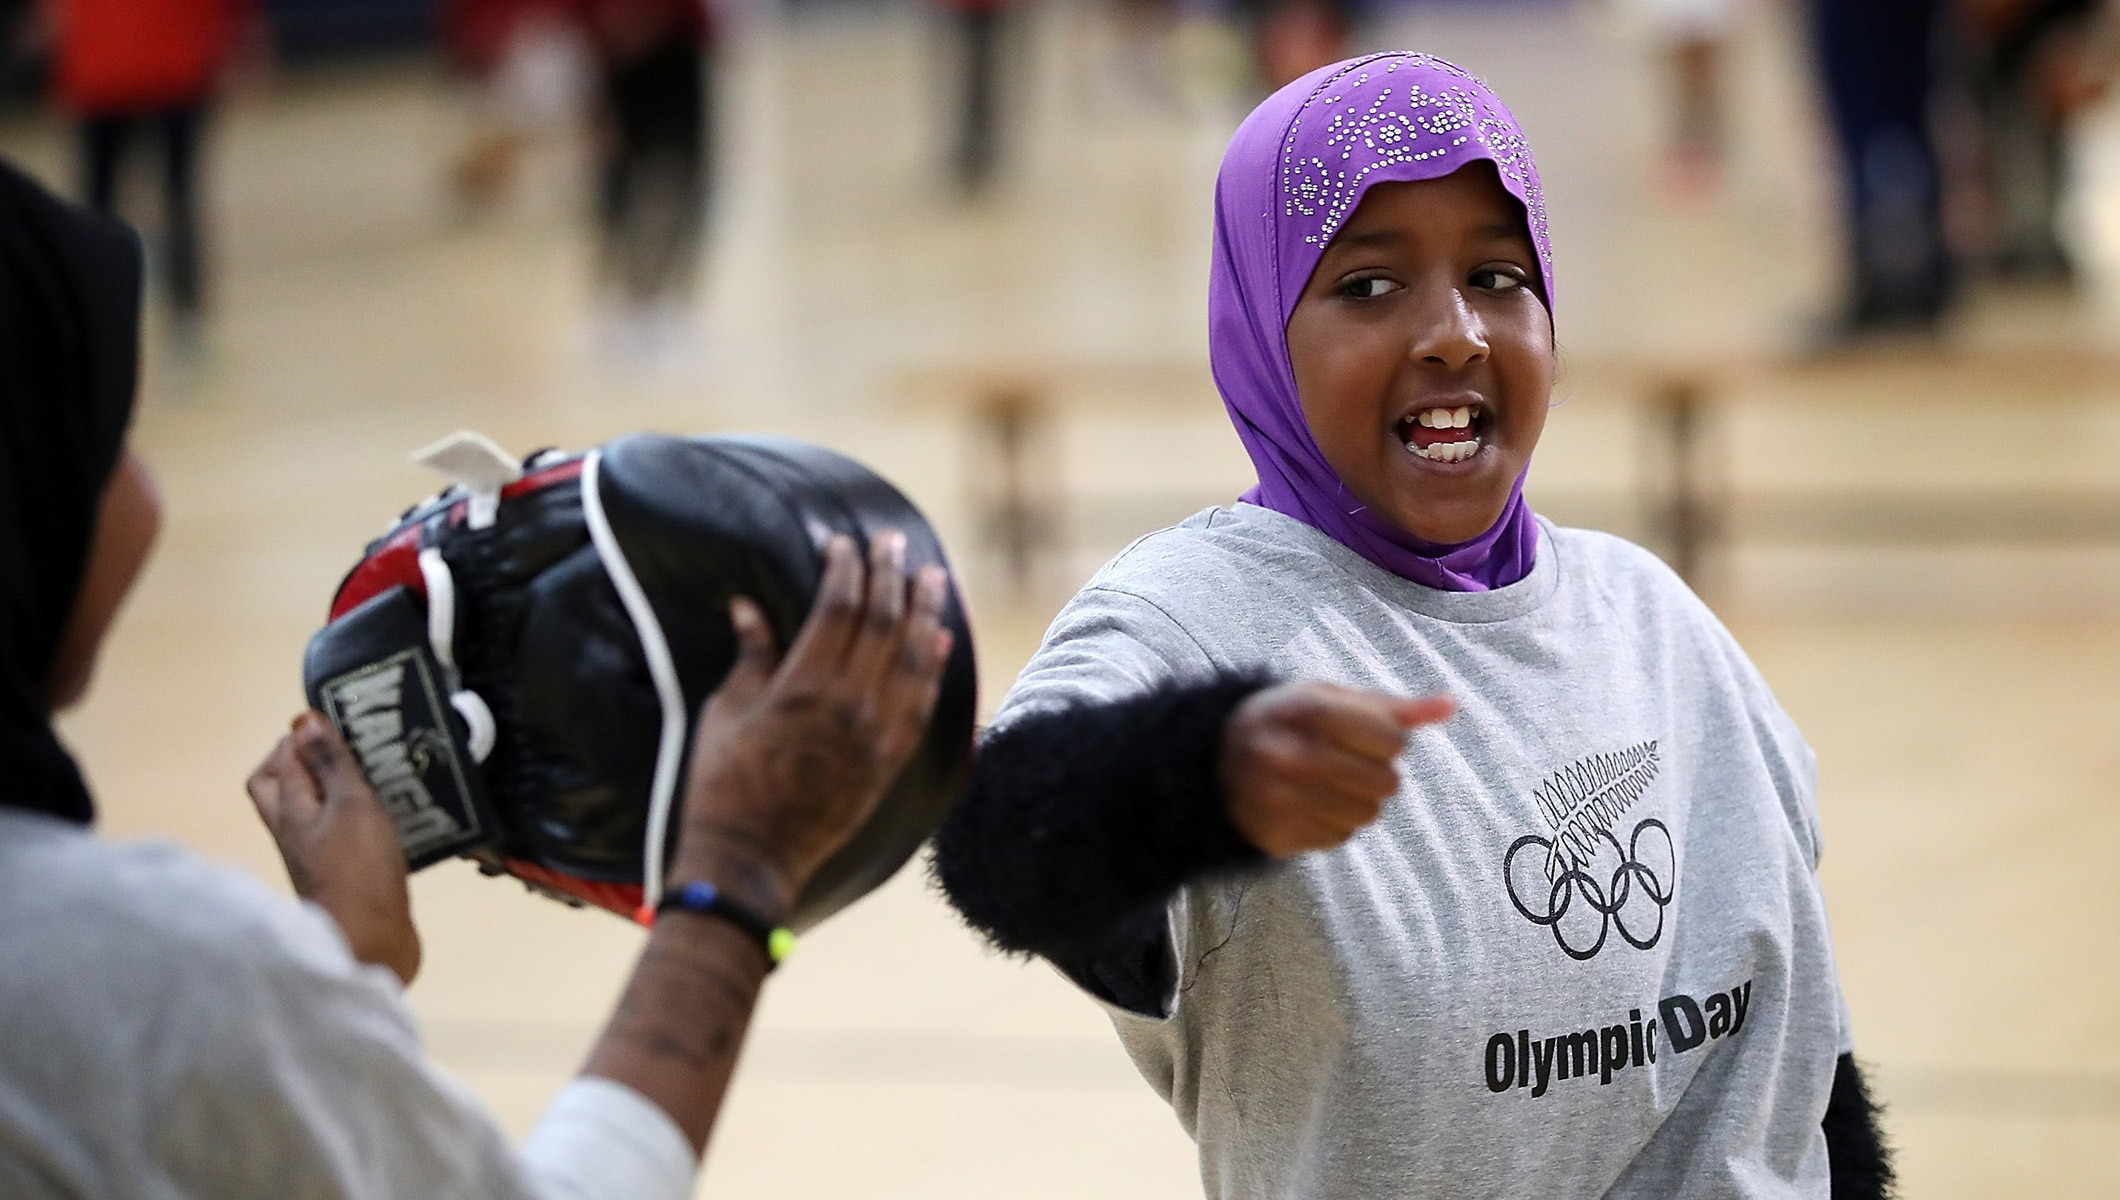 Refugees get active and embrace unique school sports day